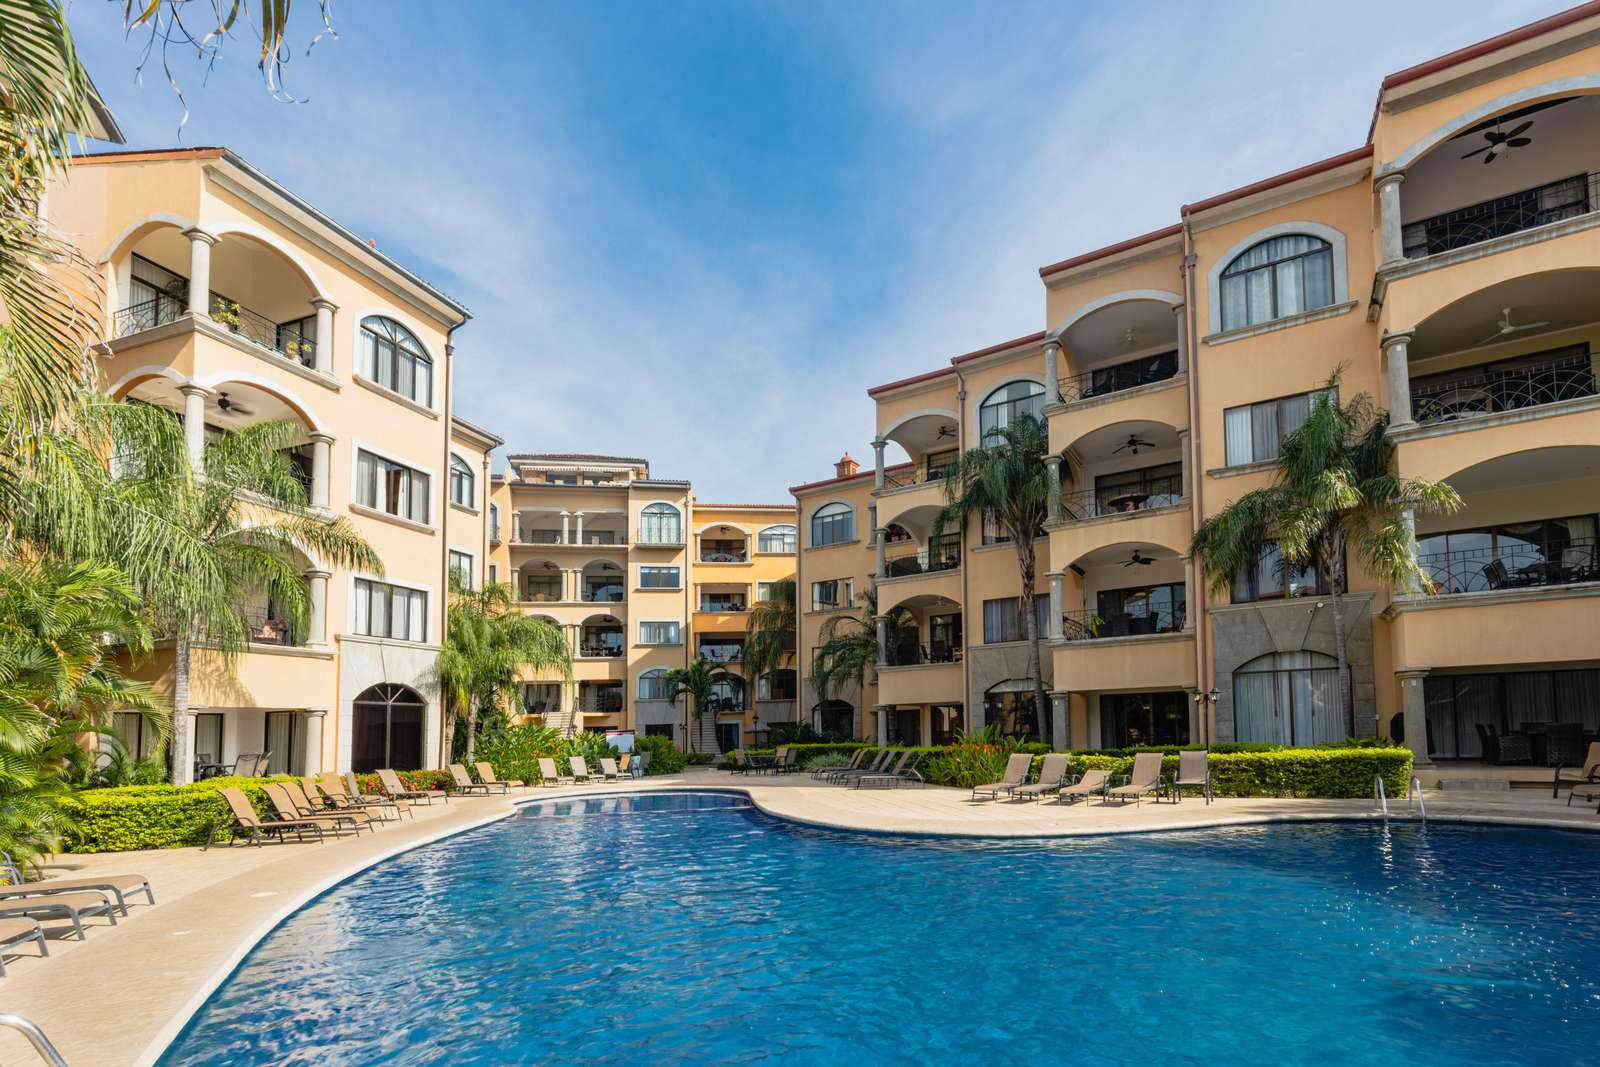 Resort style pool with waterfall at Sunrise condos